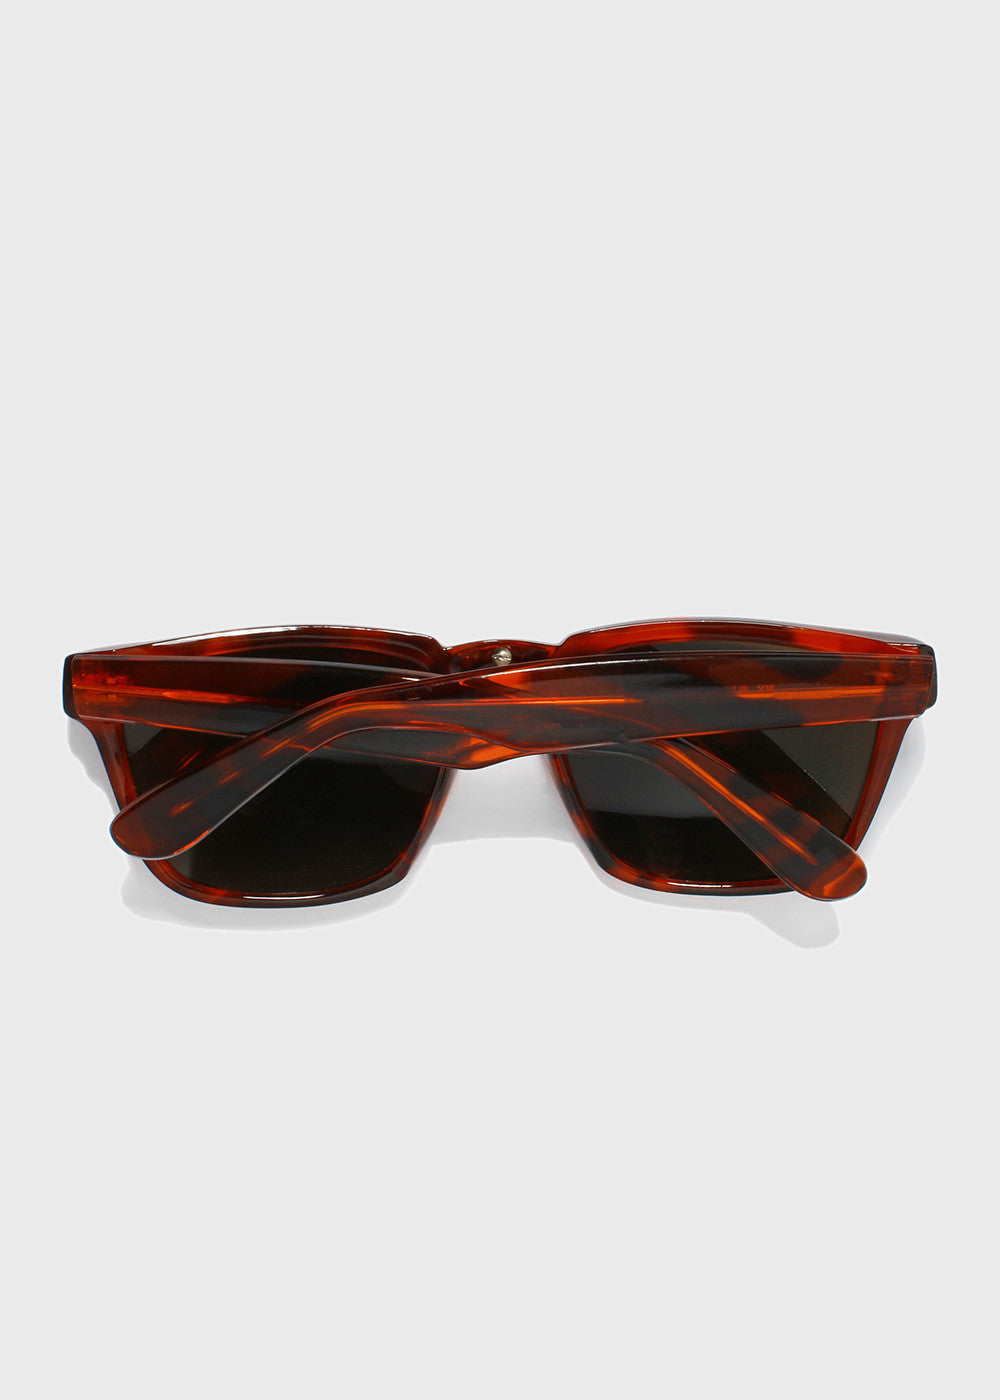 Chrome Detail Square Sunglasses- Red/Tortoise